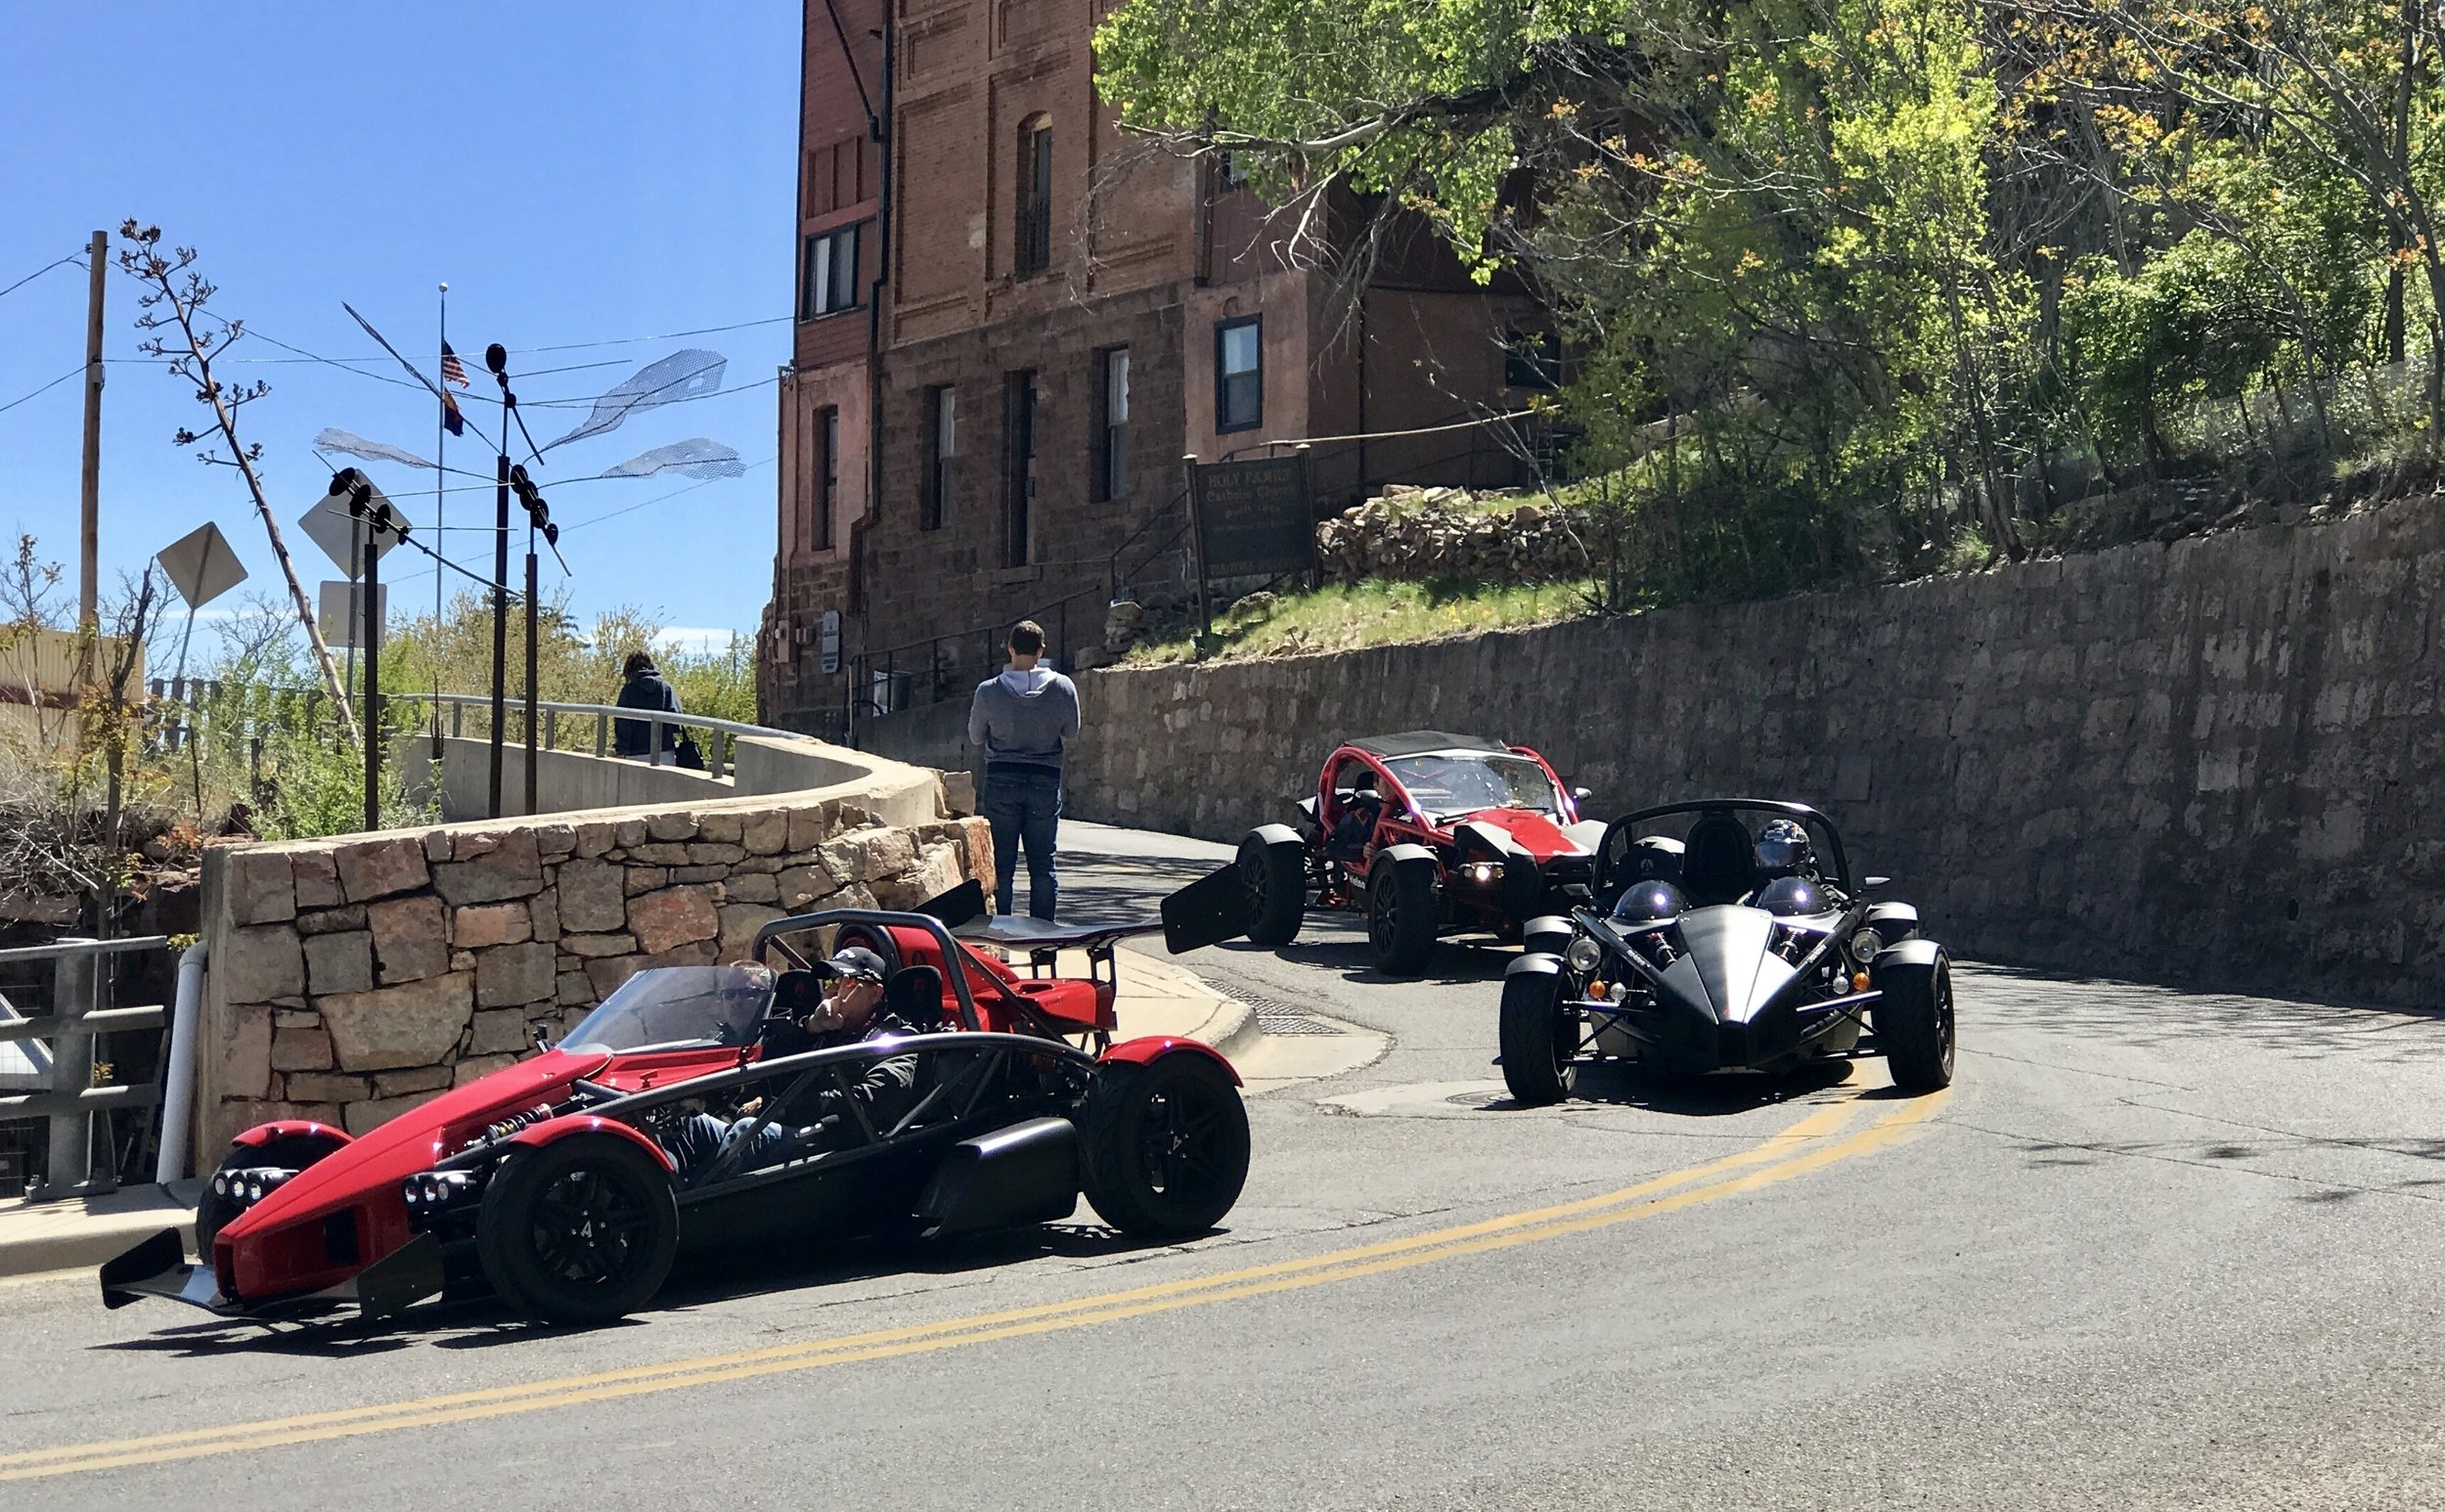 Itinerary:    9:45 AM -  Driver's meeting at Scottsdale Motorsports Gathering  10:00 -  Depart SMG as a group toward Wickenburg, then Highway 89  12:30 PM -  Reserved parking near Yavapai County Courthouse (Prescott, AZ)   12:45 -  Lunch at The Palace Saloon ( 120 S. Montezuma St. Prescott, AZ )  1:45  - Depart Prescott via Highway 89A towards Mingus Mountain / Jerome  2:45  - Fuel in Cottonwood (as needed)  3:00  - Depart Cottonwood via 89A toward Sedona/Oak Creek Canyon  4:15  - End 89A at I-17 and return to Valley as desired  (More details will be provided to confirmed participants prior to the event.)